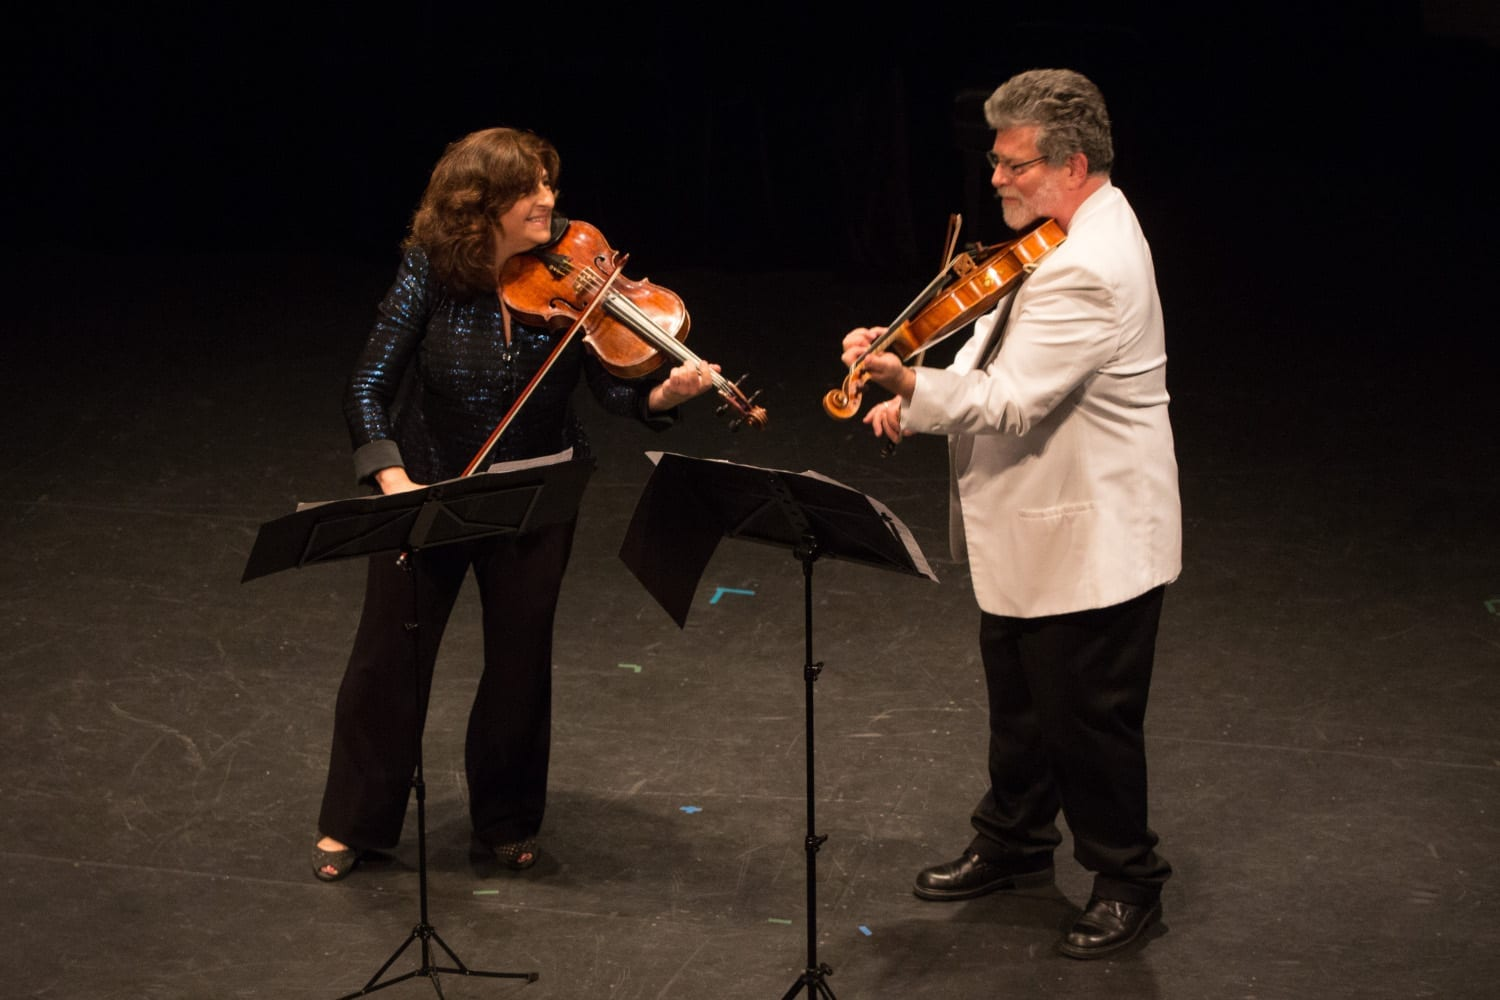 Aloysia Friedmann and Toby Appel 2 - Photo Credit Barry Carlton